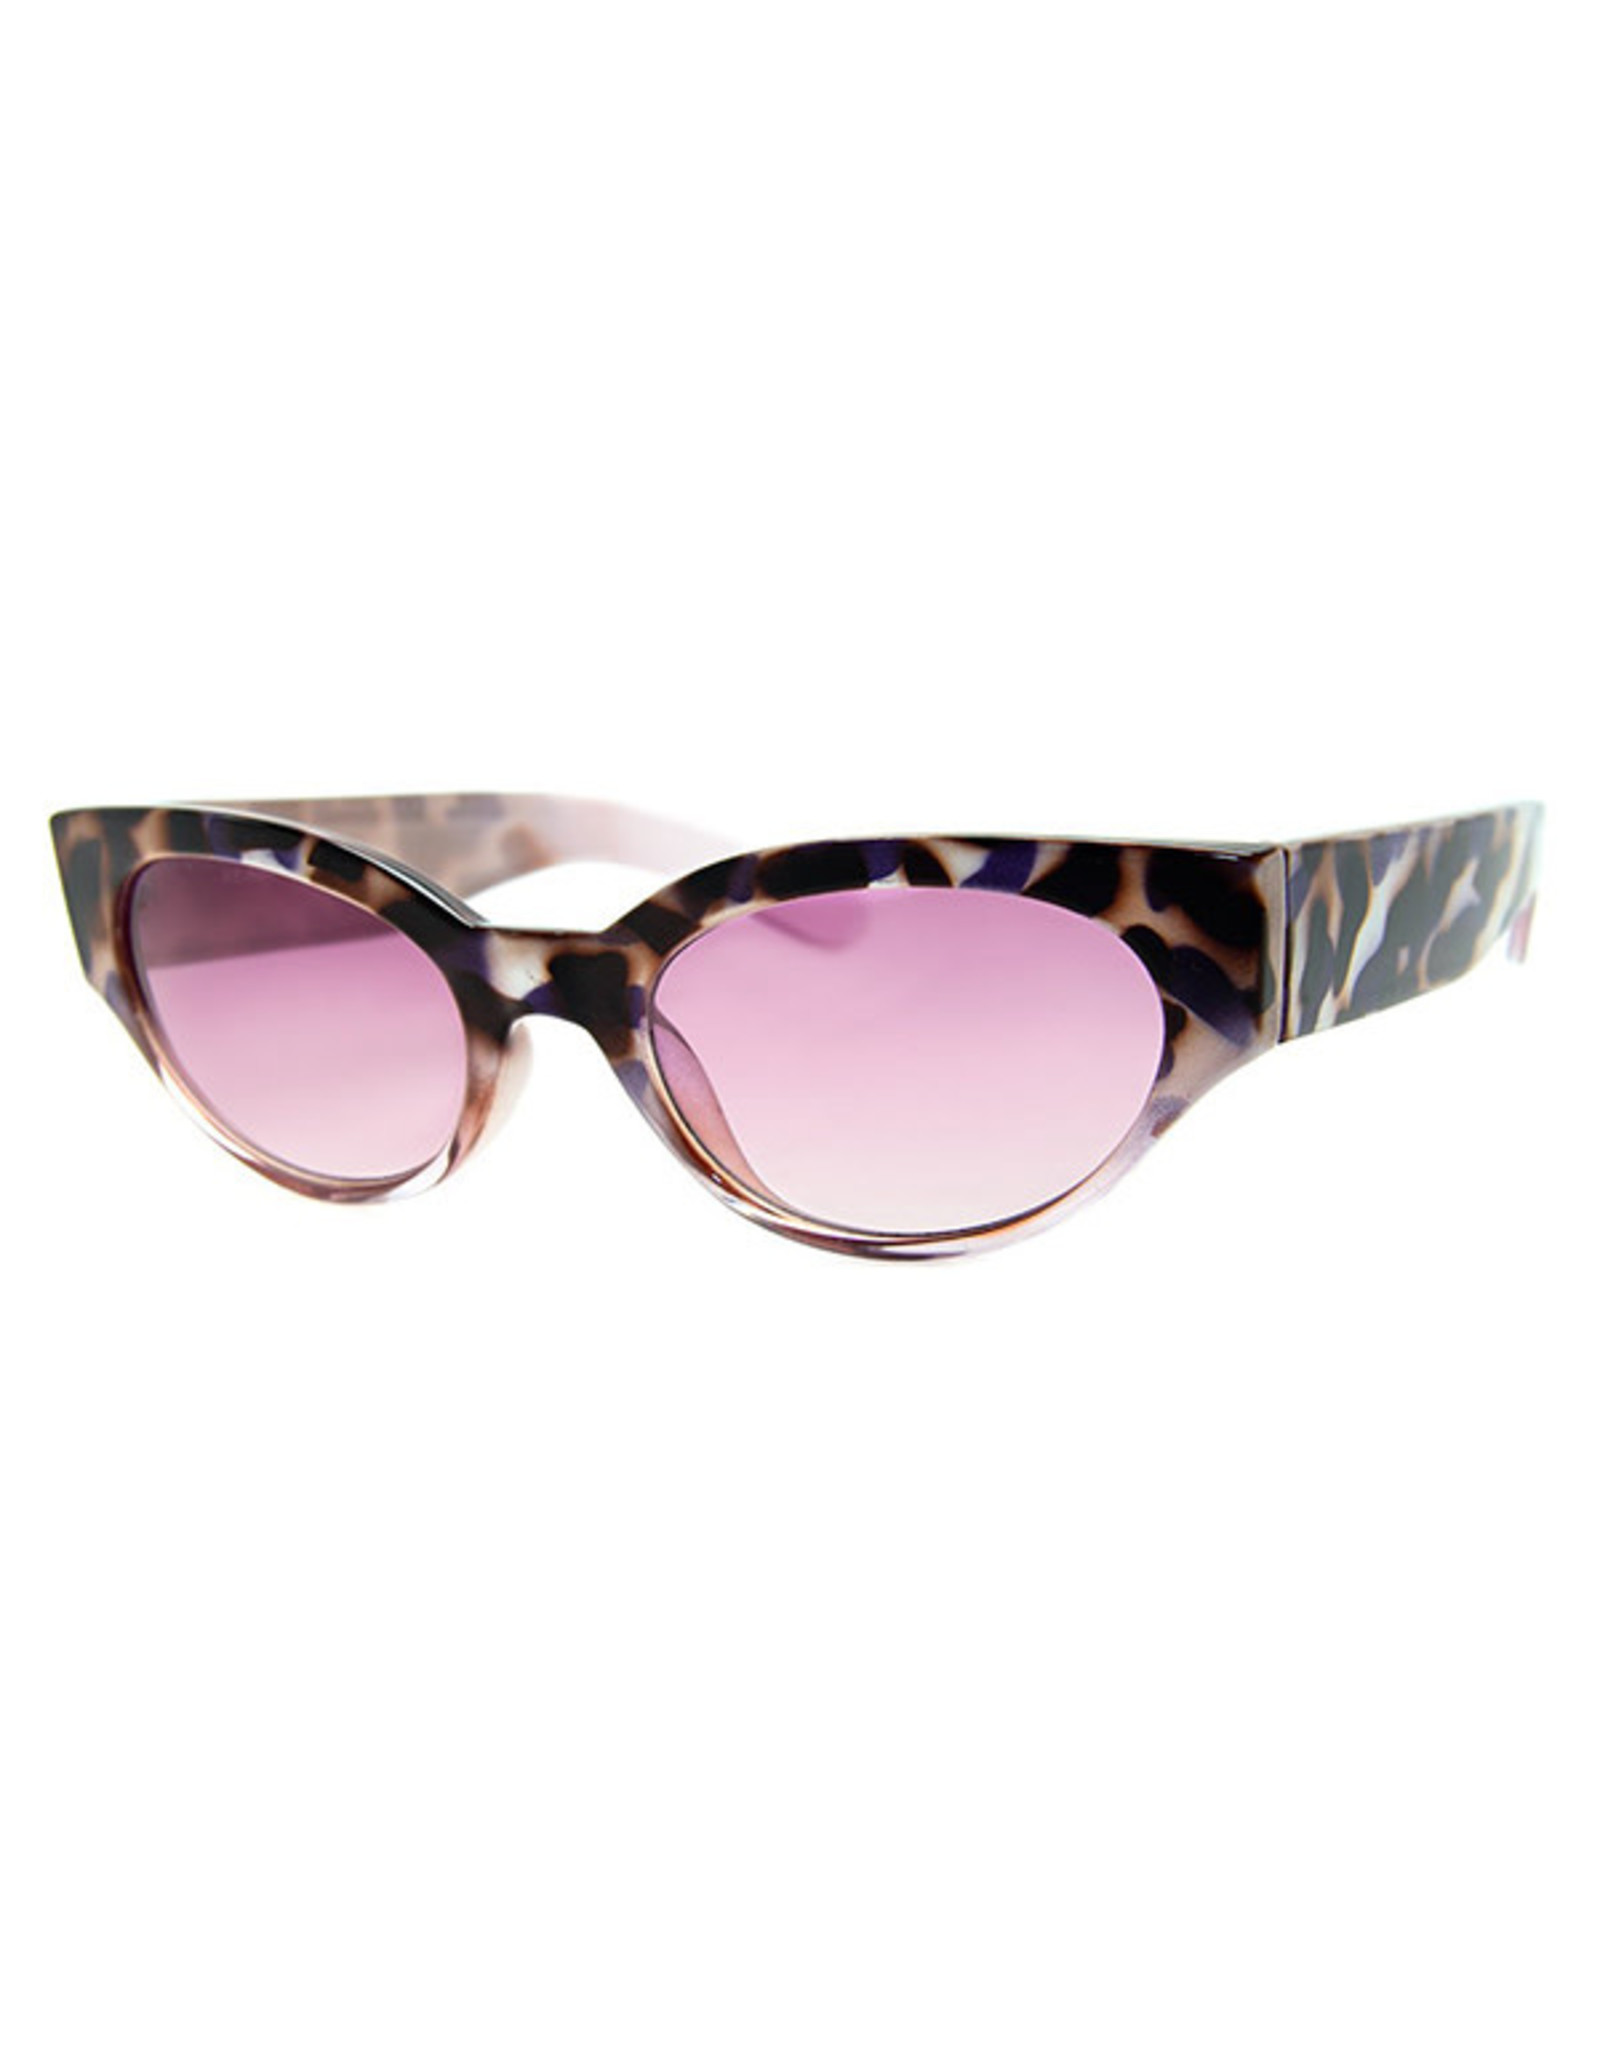 AJ Morgan AJM - Skinny Oval Frame Sunglasses